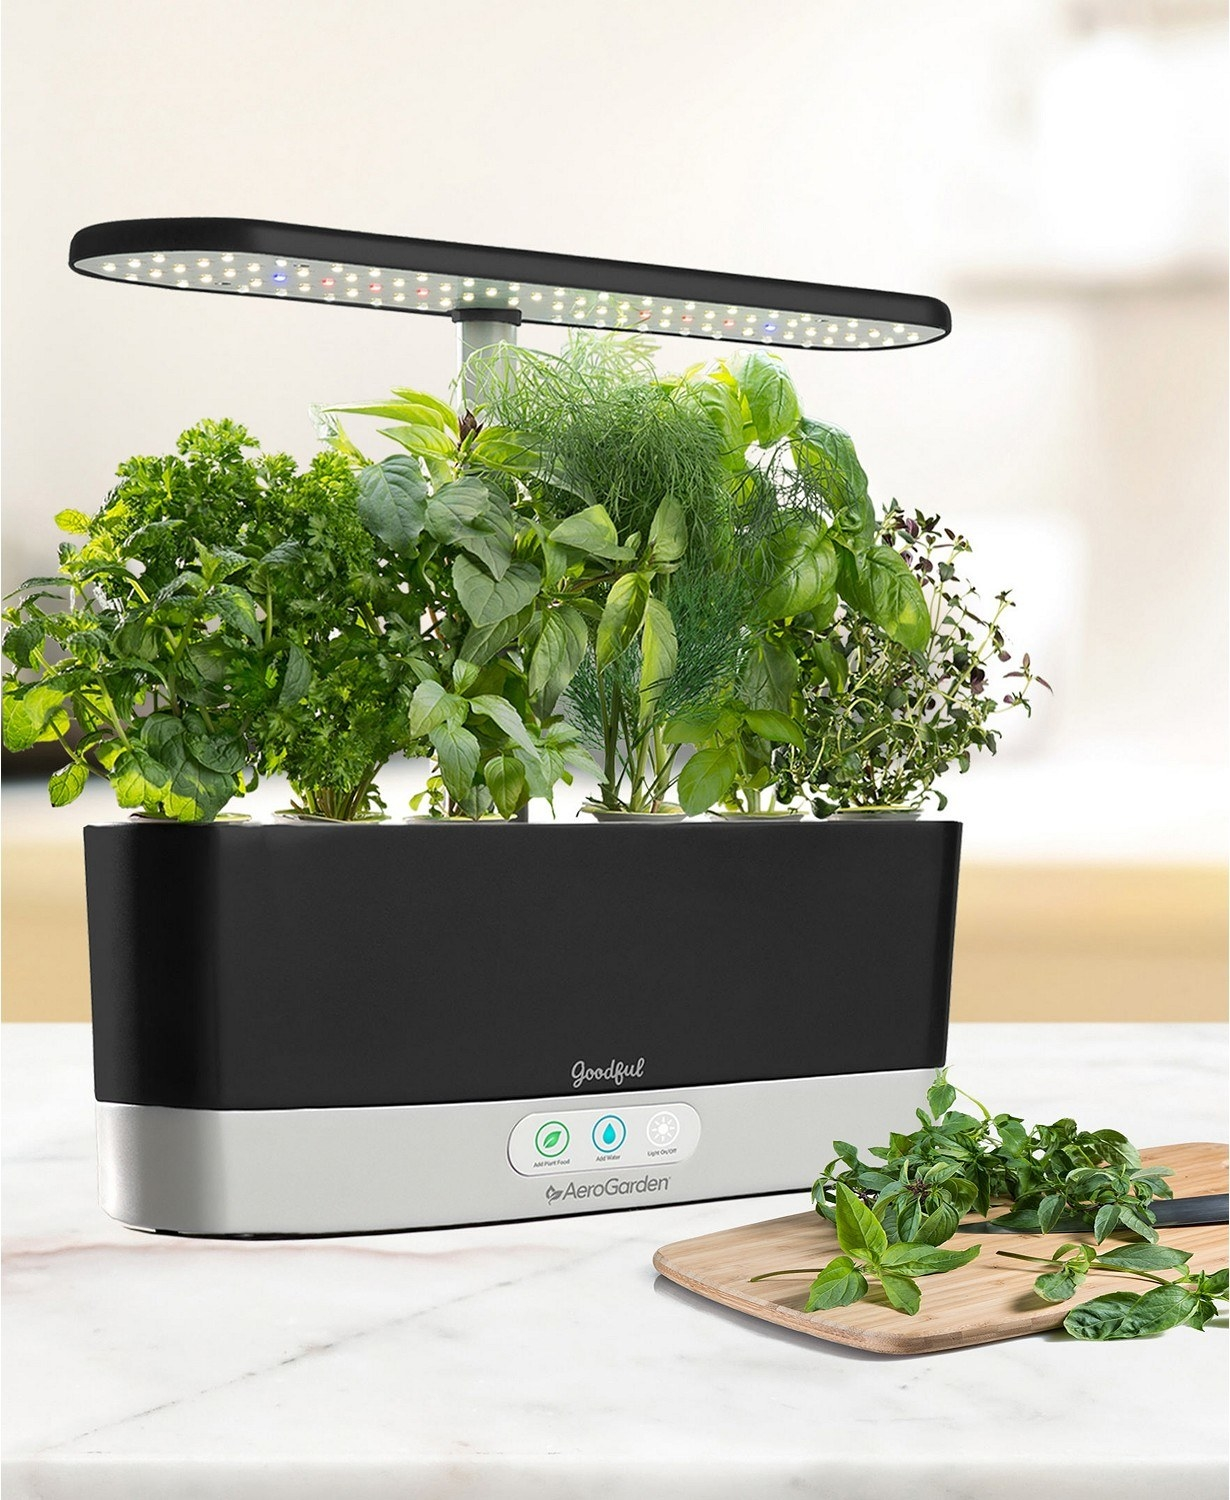 black device with pods of growing herbs and a light overhead